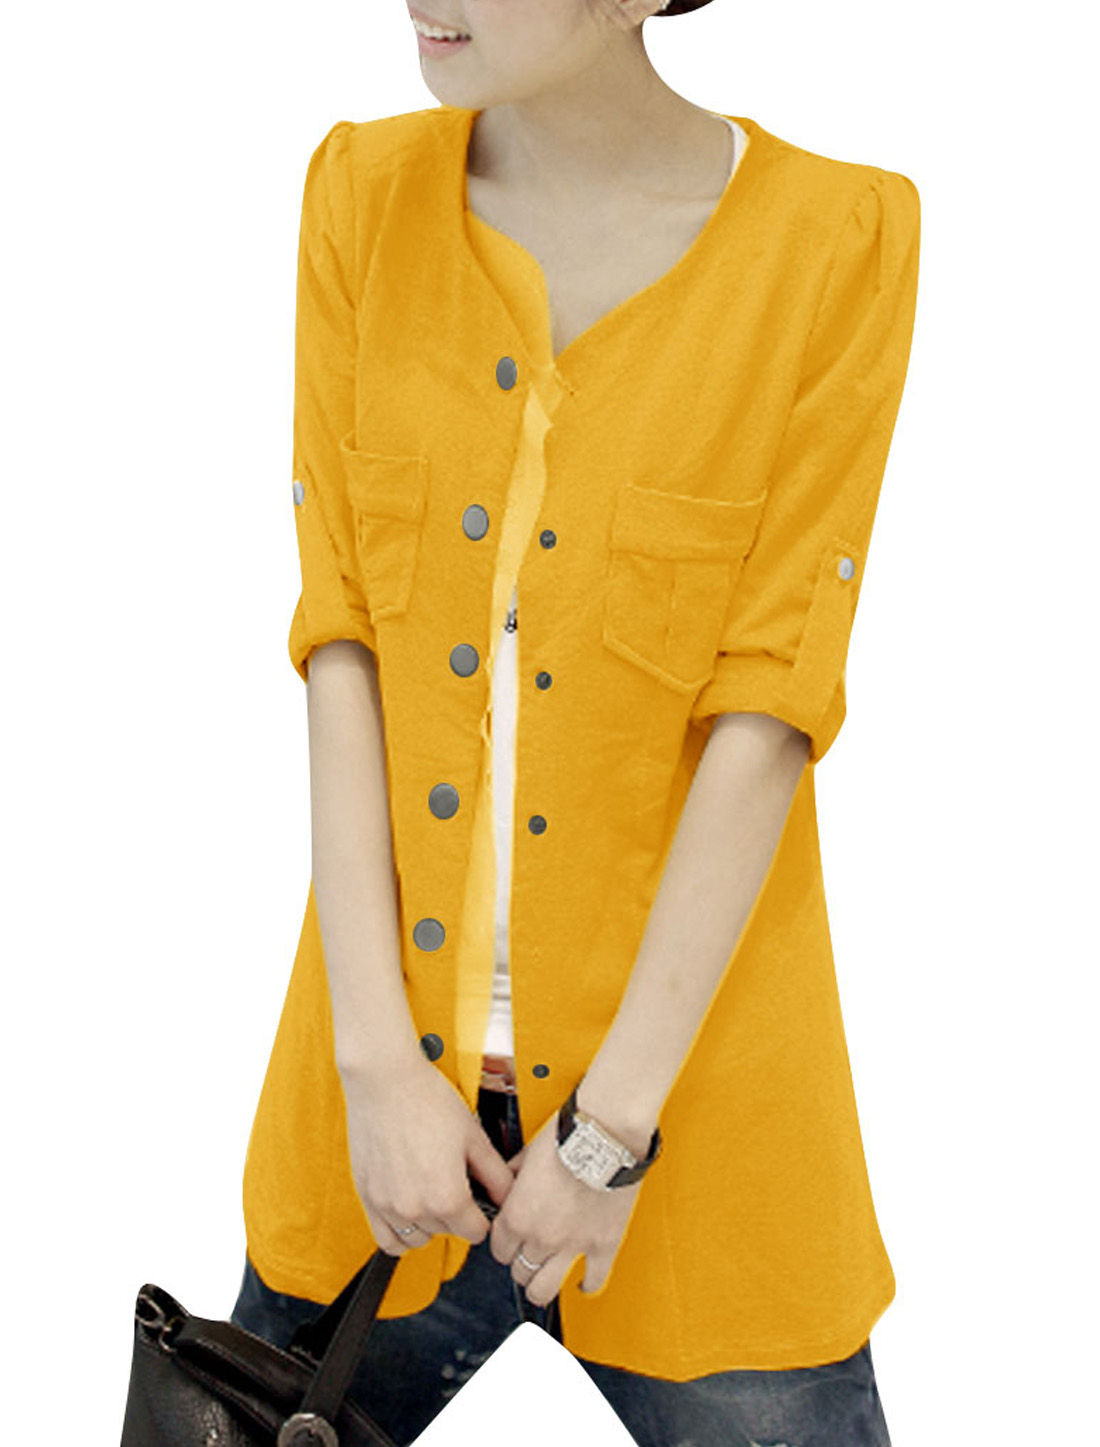 Women's Button Front w Pockets Puff Sleeves Spring Yellow XS Thin Coat